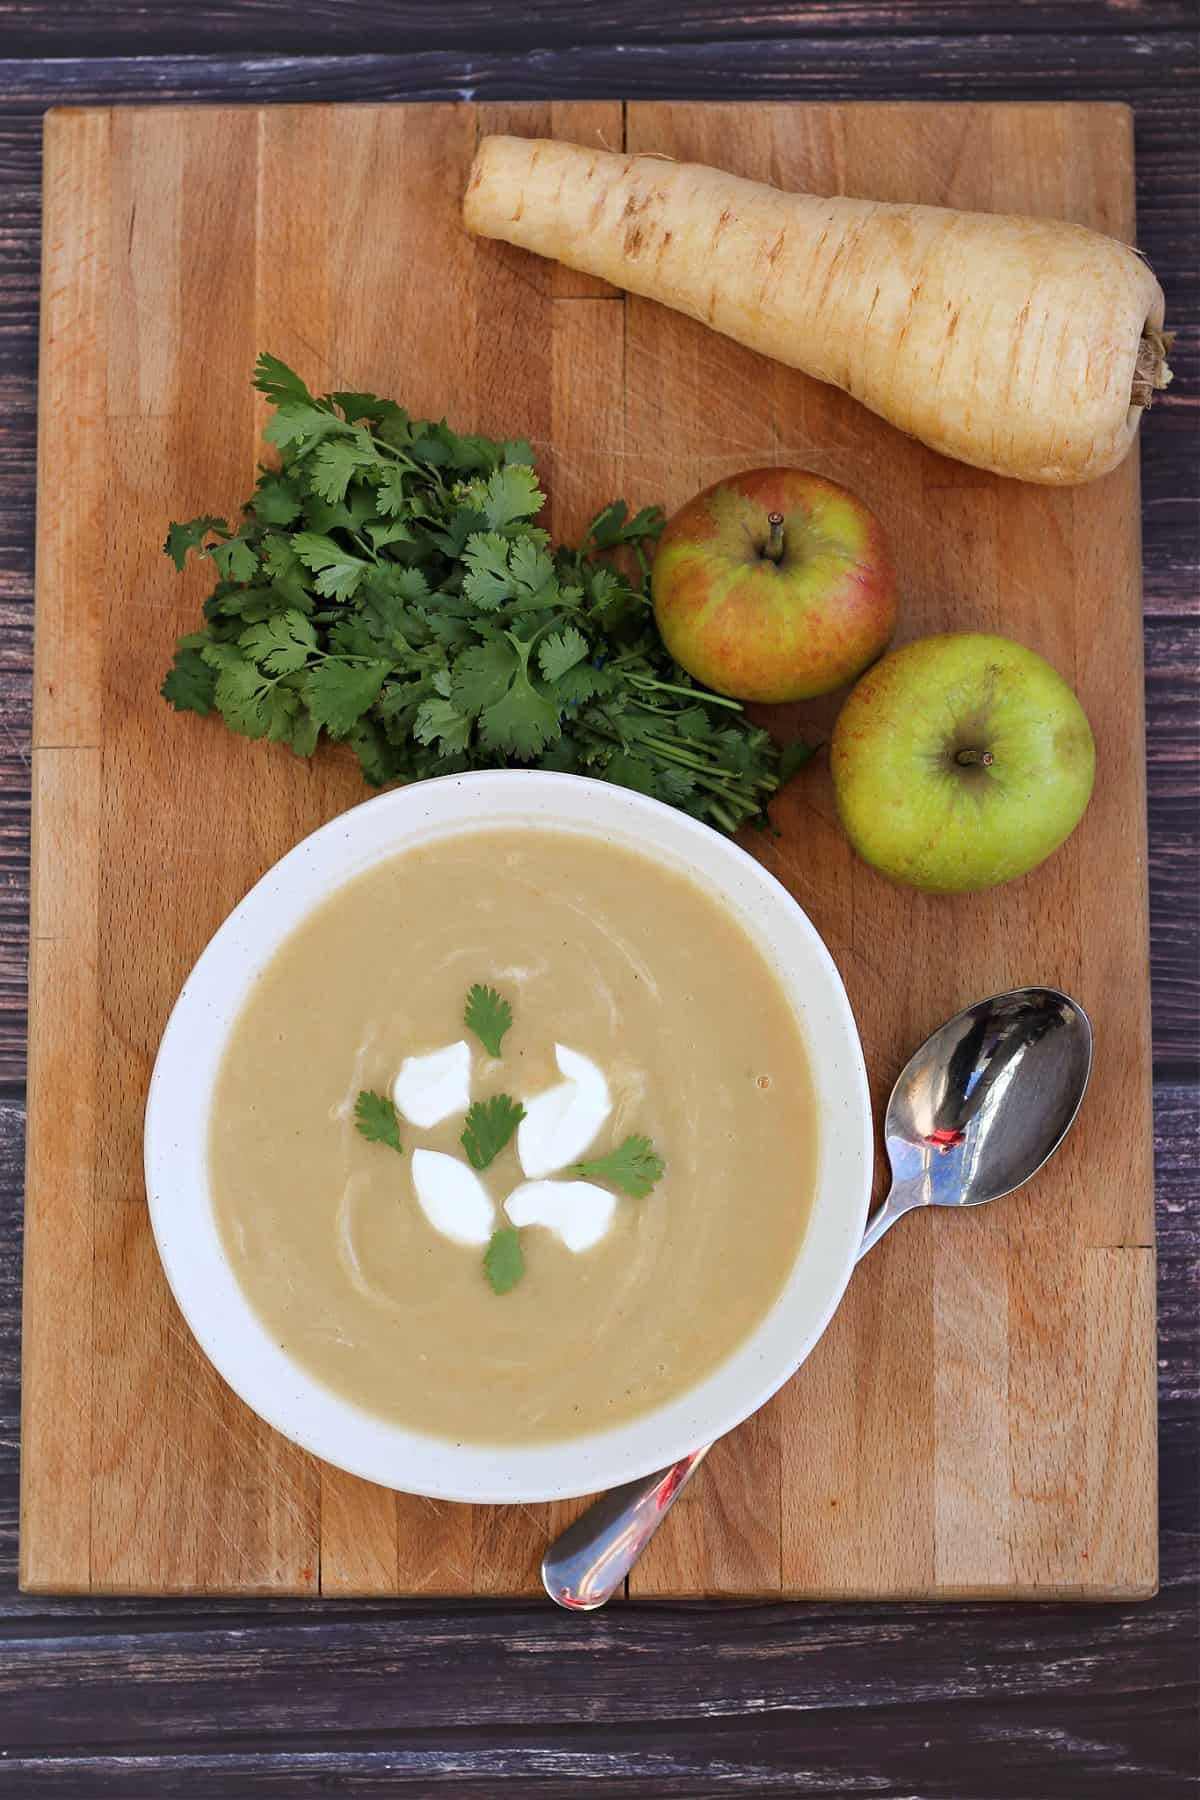 Bowl of soup on a wooden board with parsnip, apples and herbs behind.